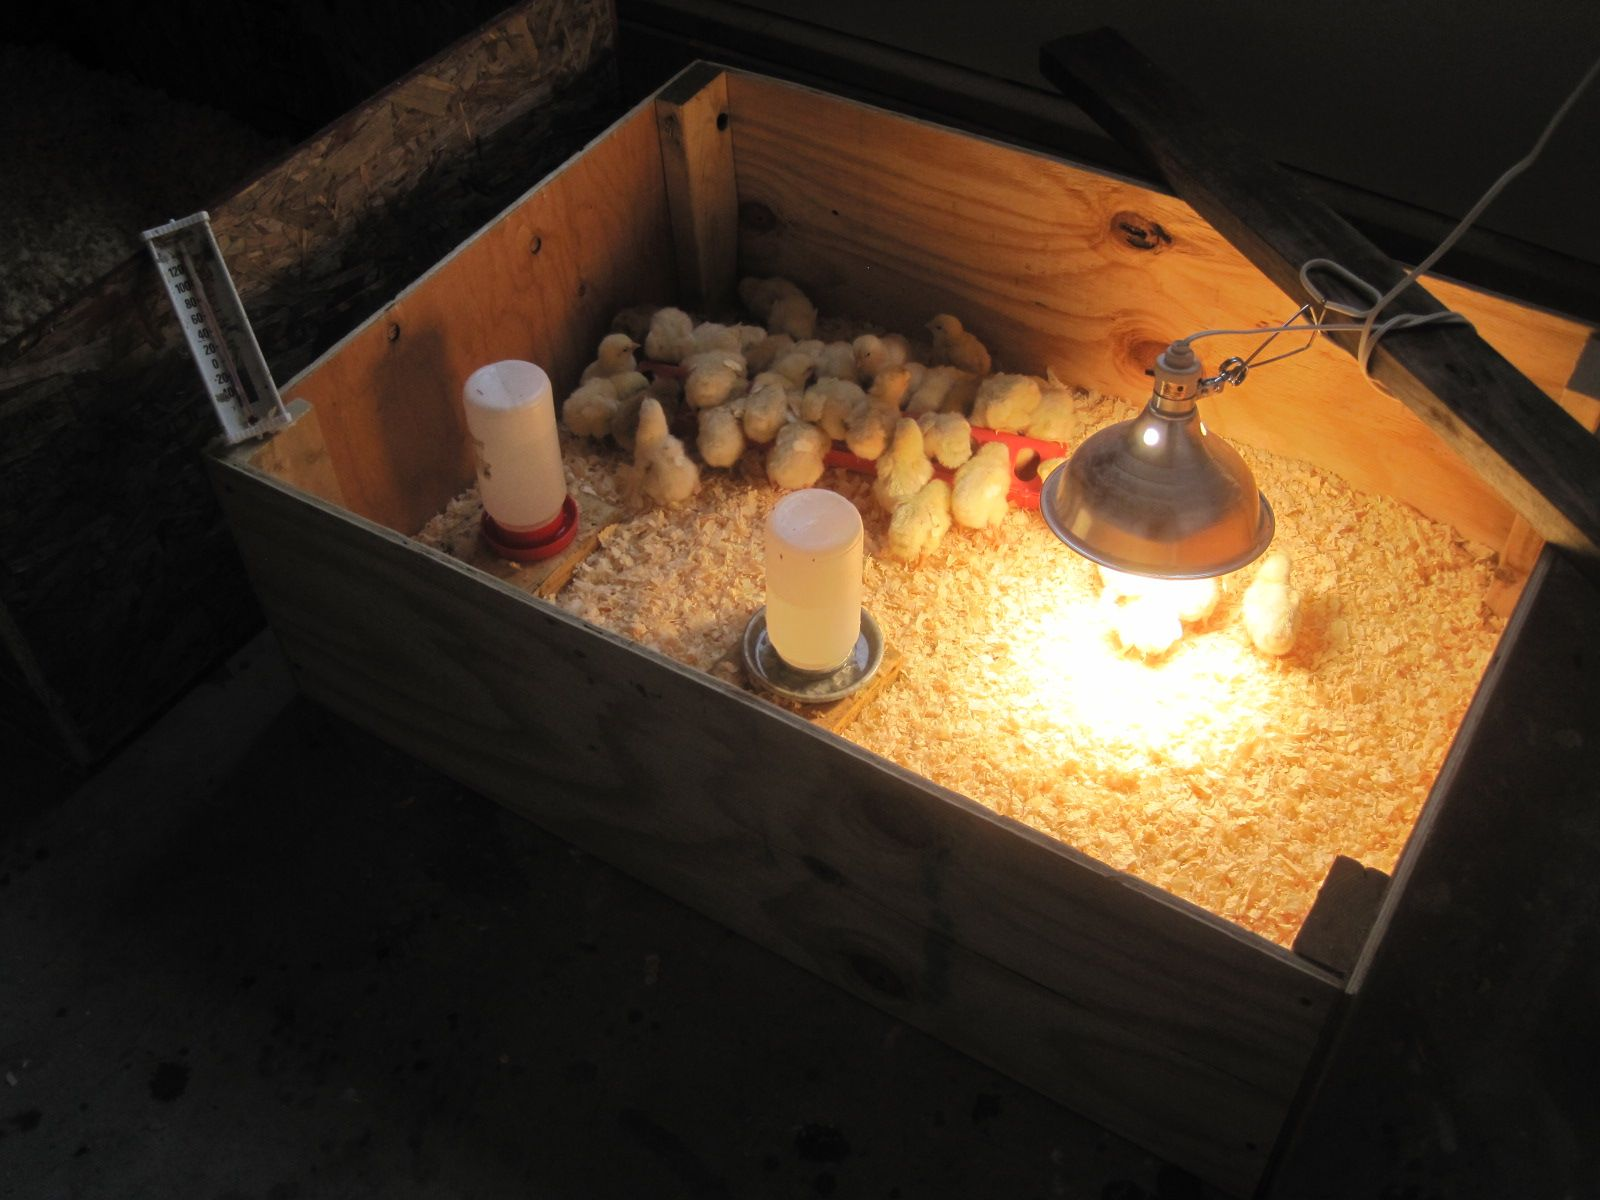 Charmant Diy Chicken Brooder Box